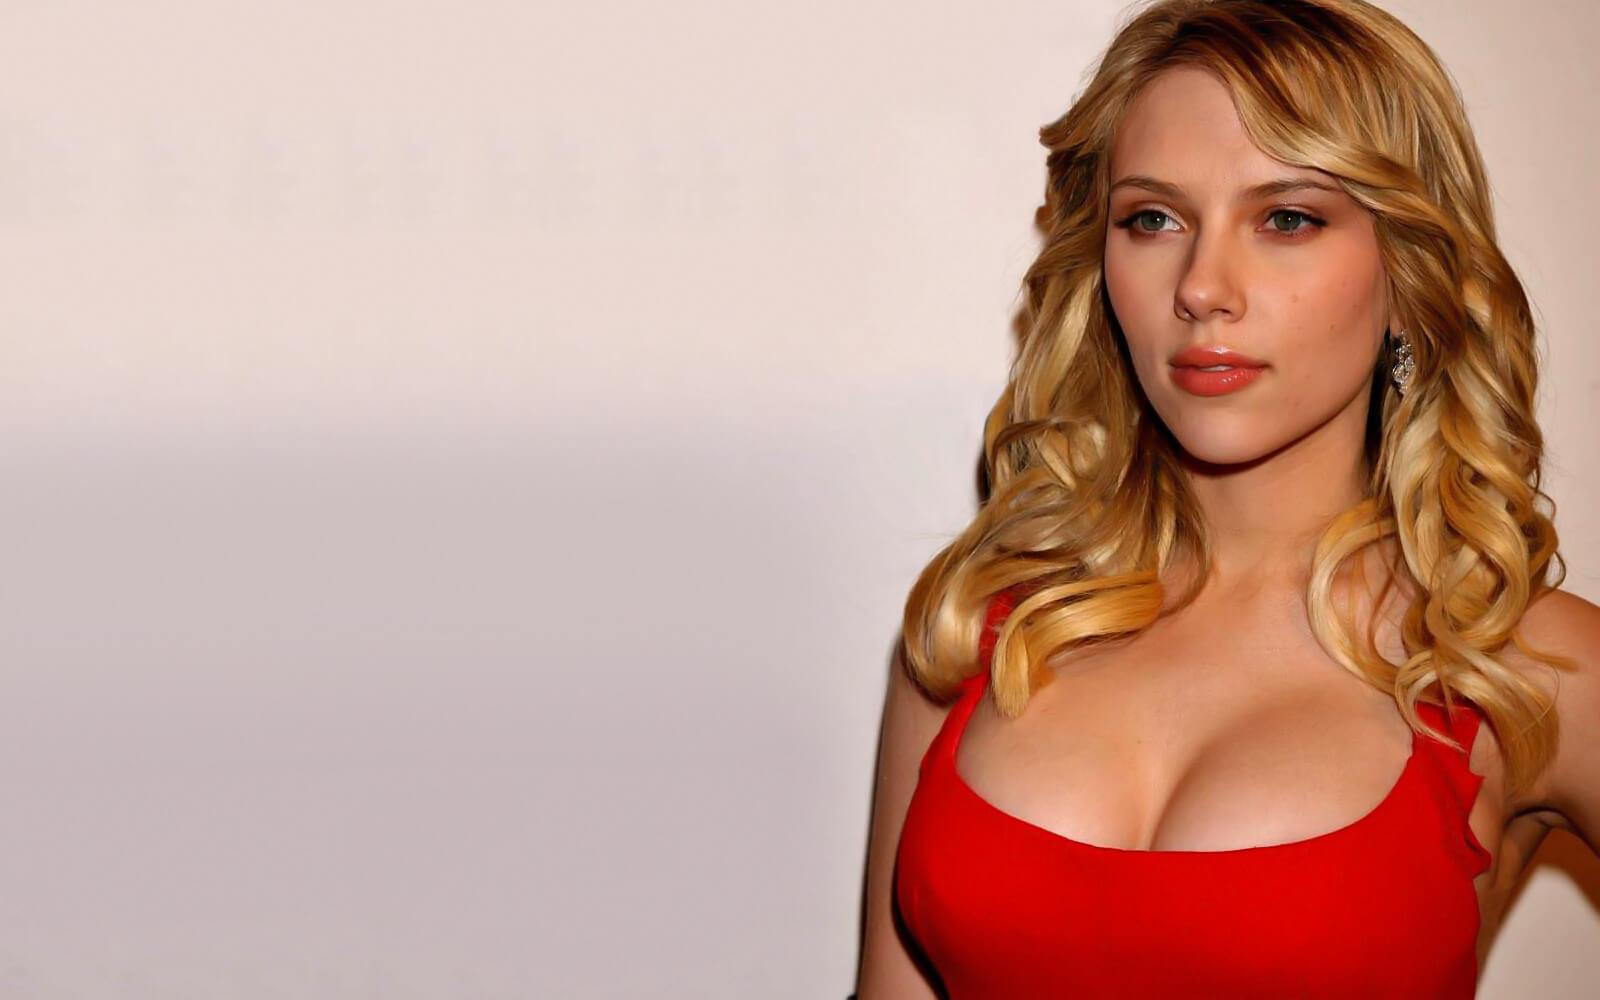 Scarlett Johansson Says She Has Regrets Over Being 'Hyper-Sexualized' At The Start Of Her Career